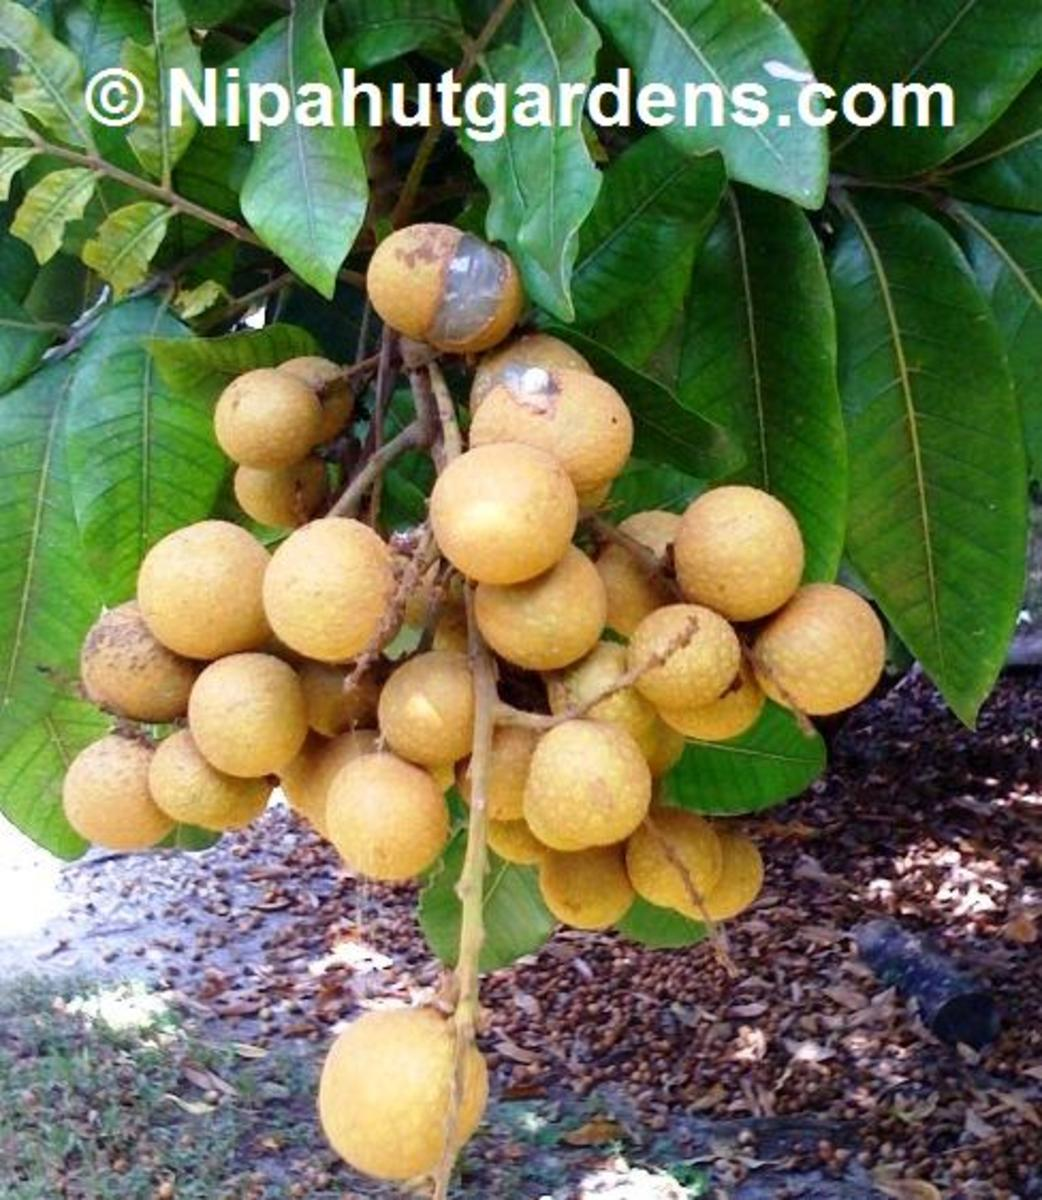 courtesy of www.nipahutgardens.com/prodimages/longan.jpg